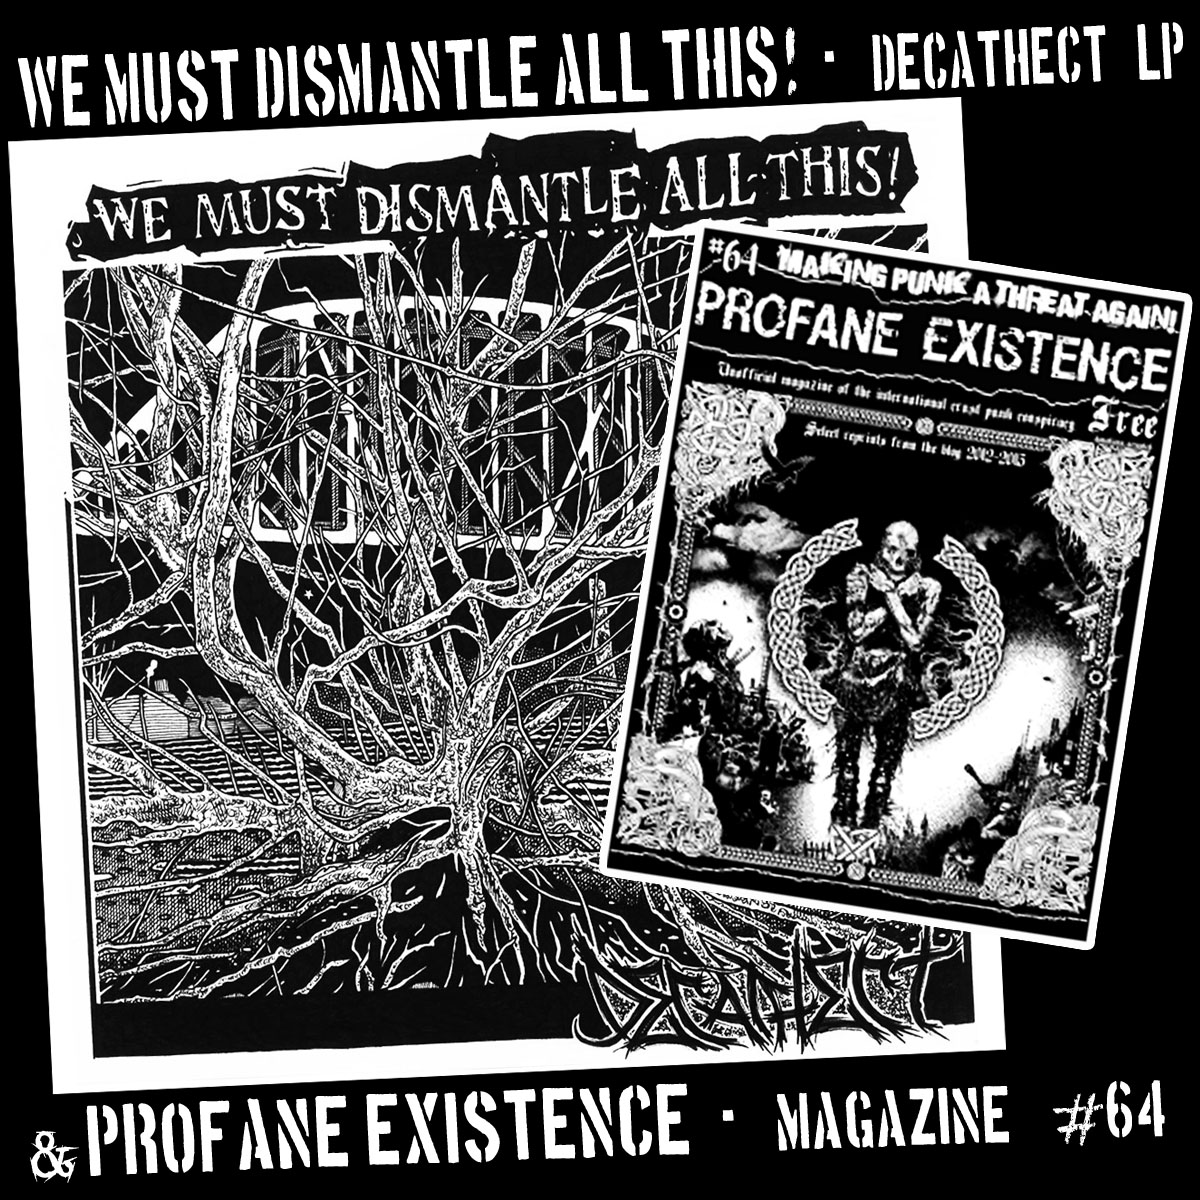 We Must Dismantle All This - Decathect